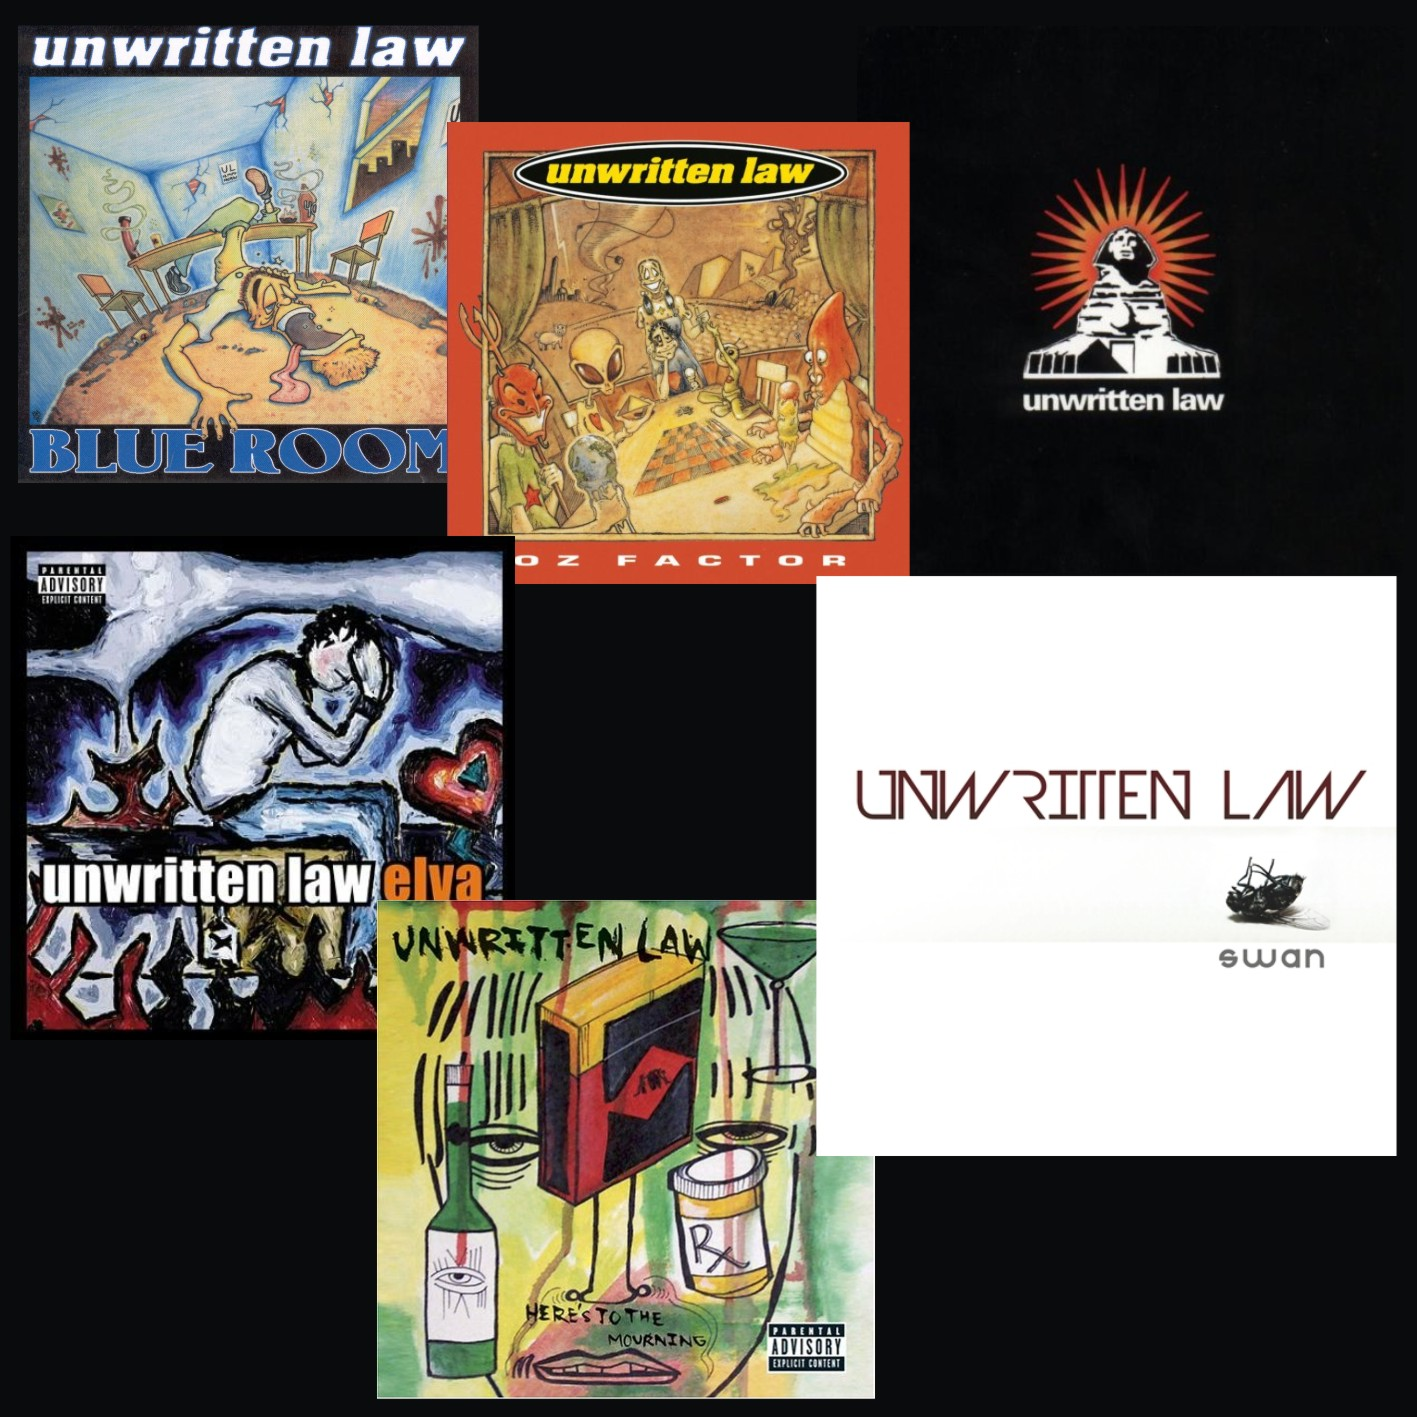 unwritten law Check out unwritten law by unwritten law on amazon music stream ad-free or purchase cd's and mp3s now on amazoncom.